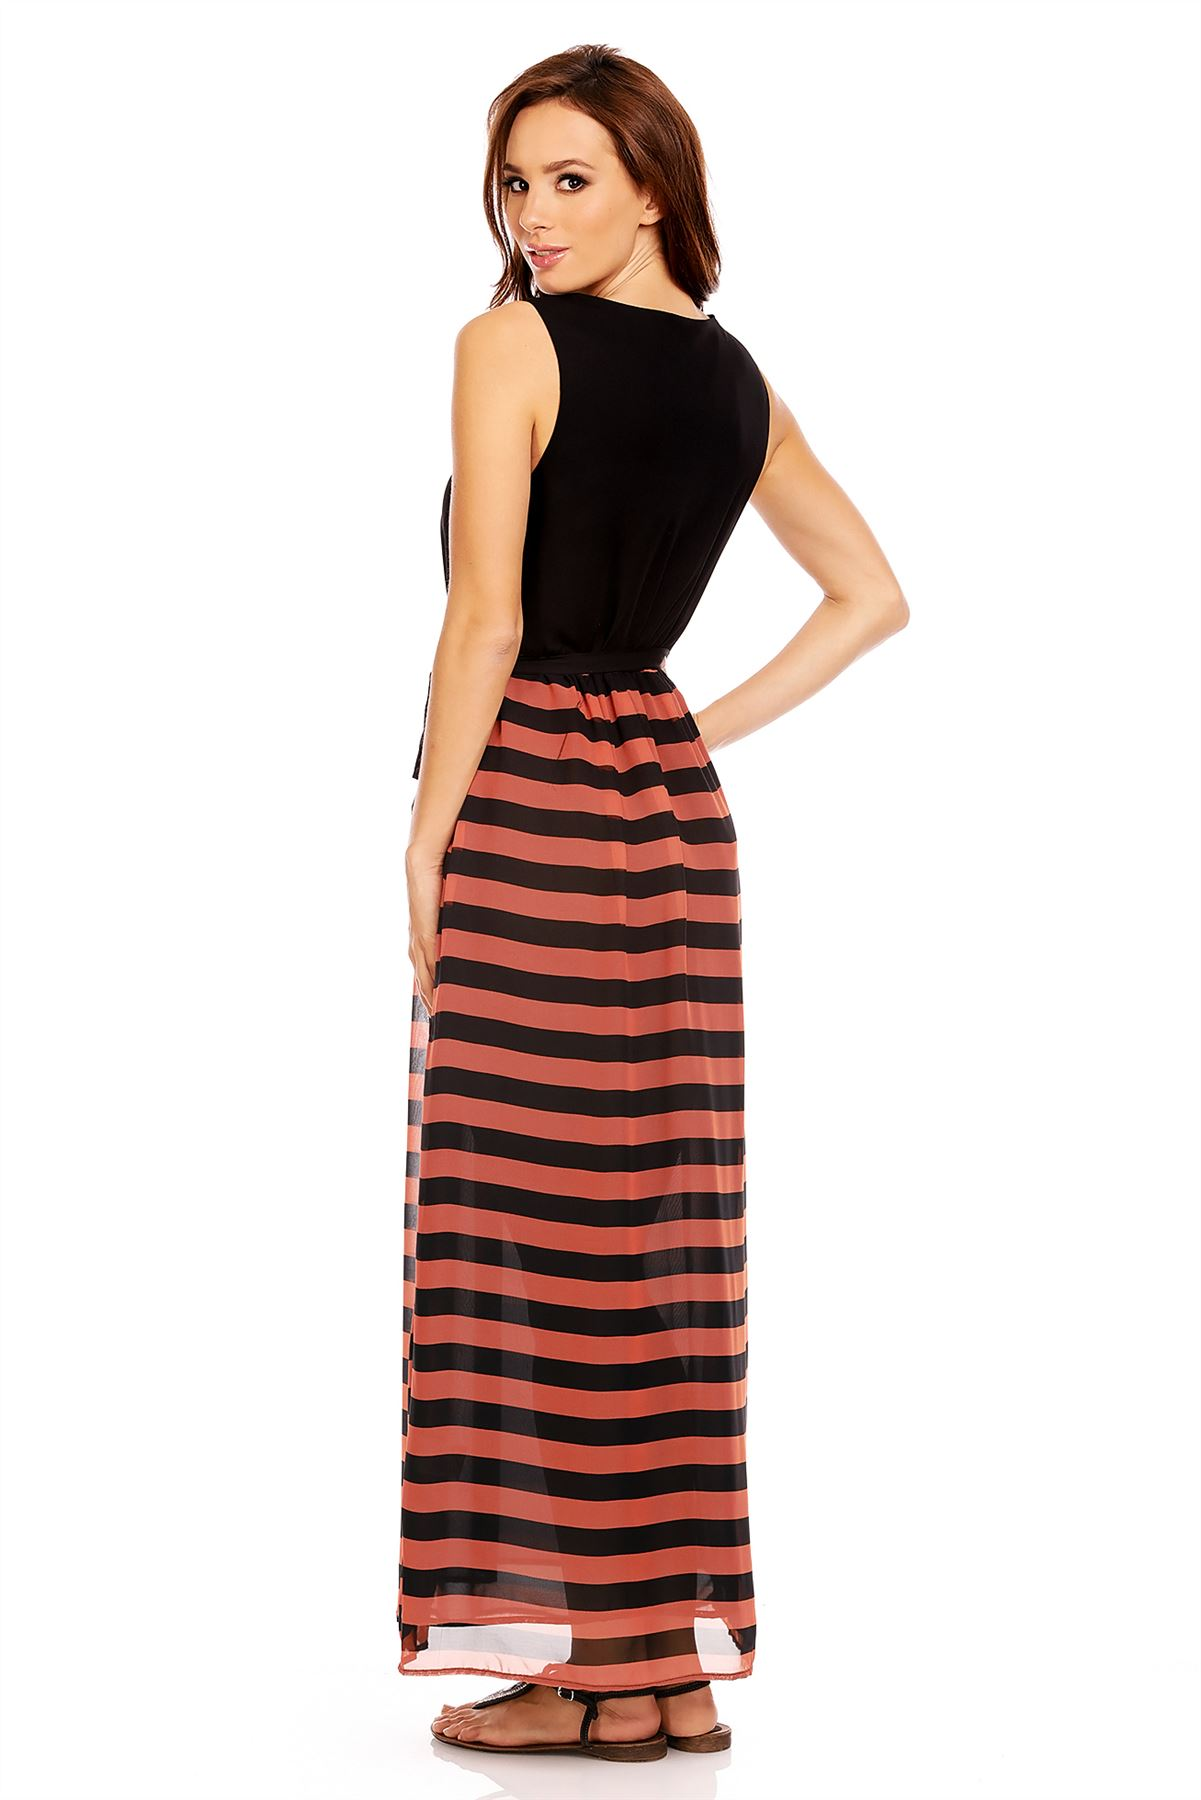 Shop Rainbow for our collection of plus size maxi dresses. Get free shipping on orders over $50 & free returns in store.